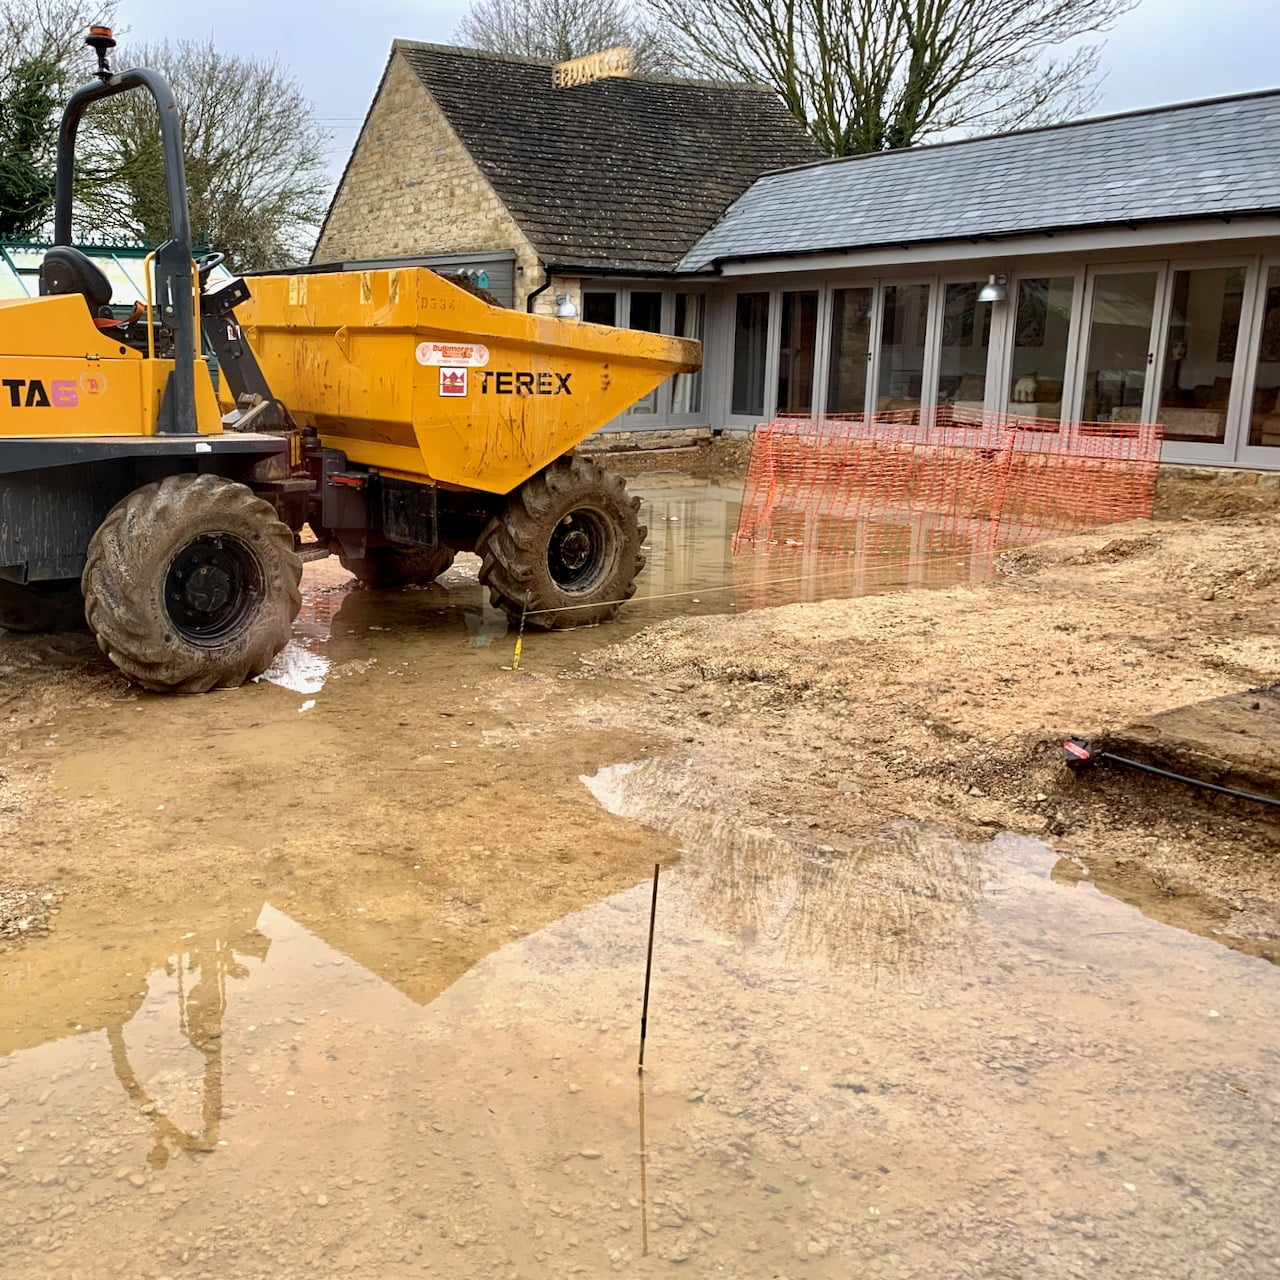 Building work has started at Manor Farm Barn but the water table is so high we have a flood